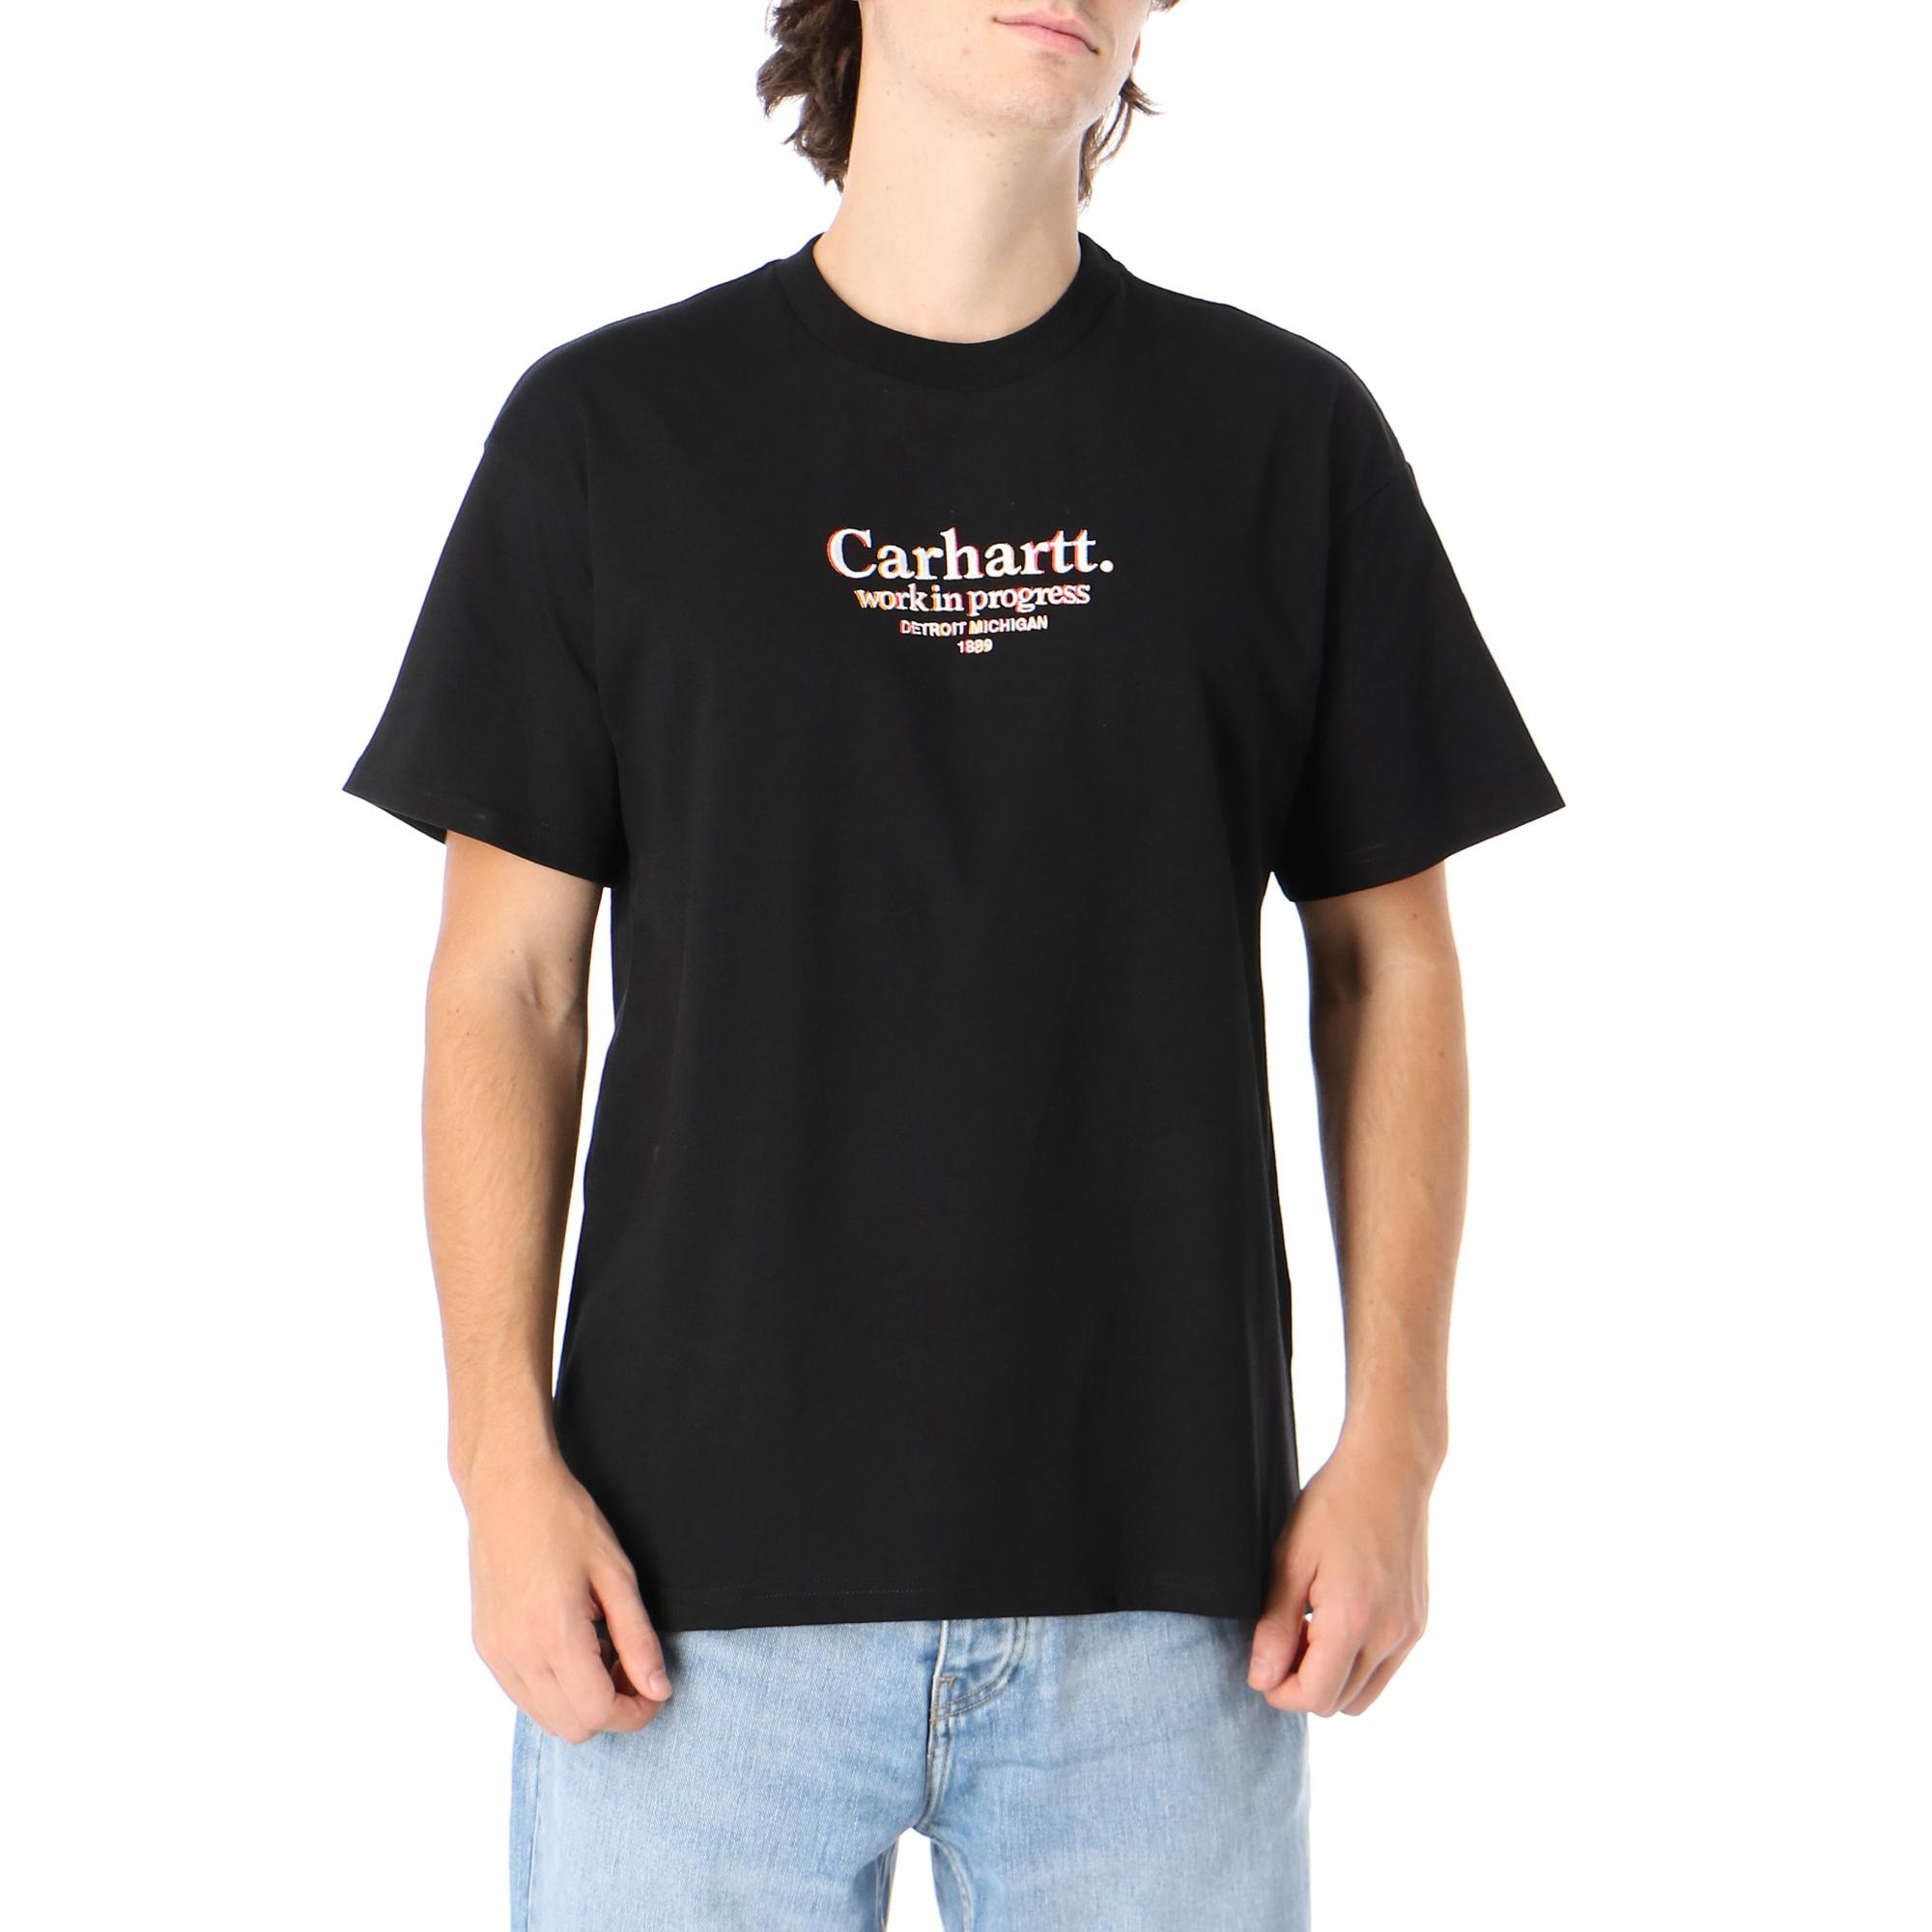 Carhartt S/s Commission T-shirt Black